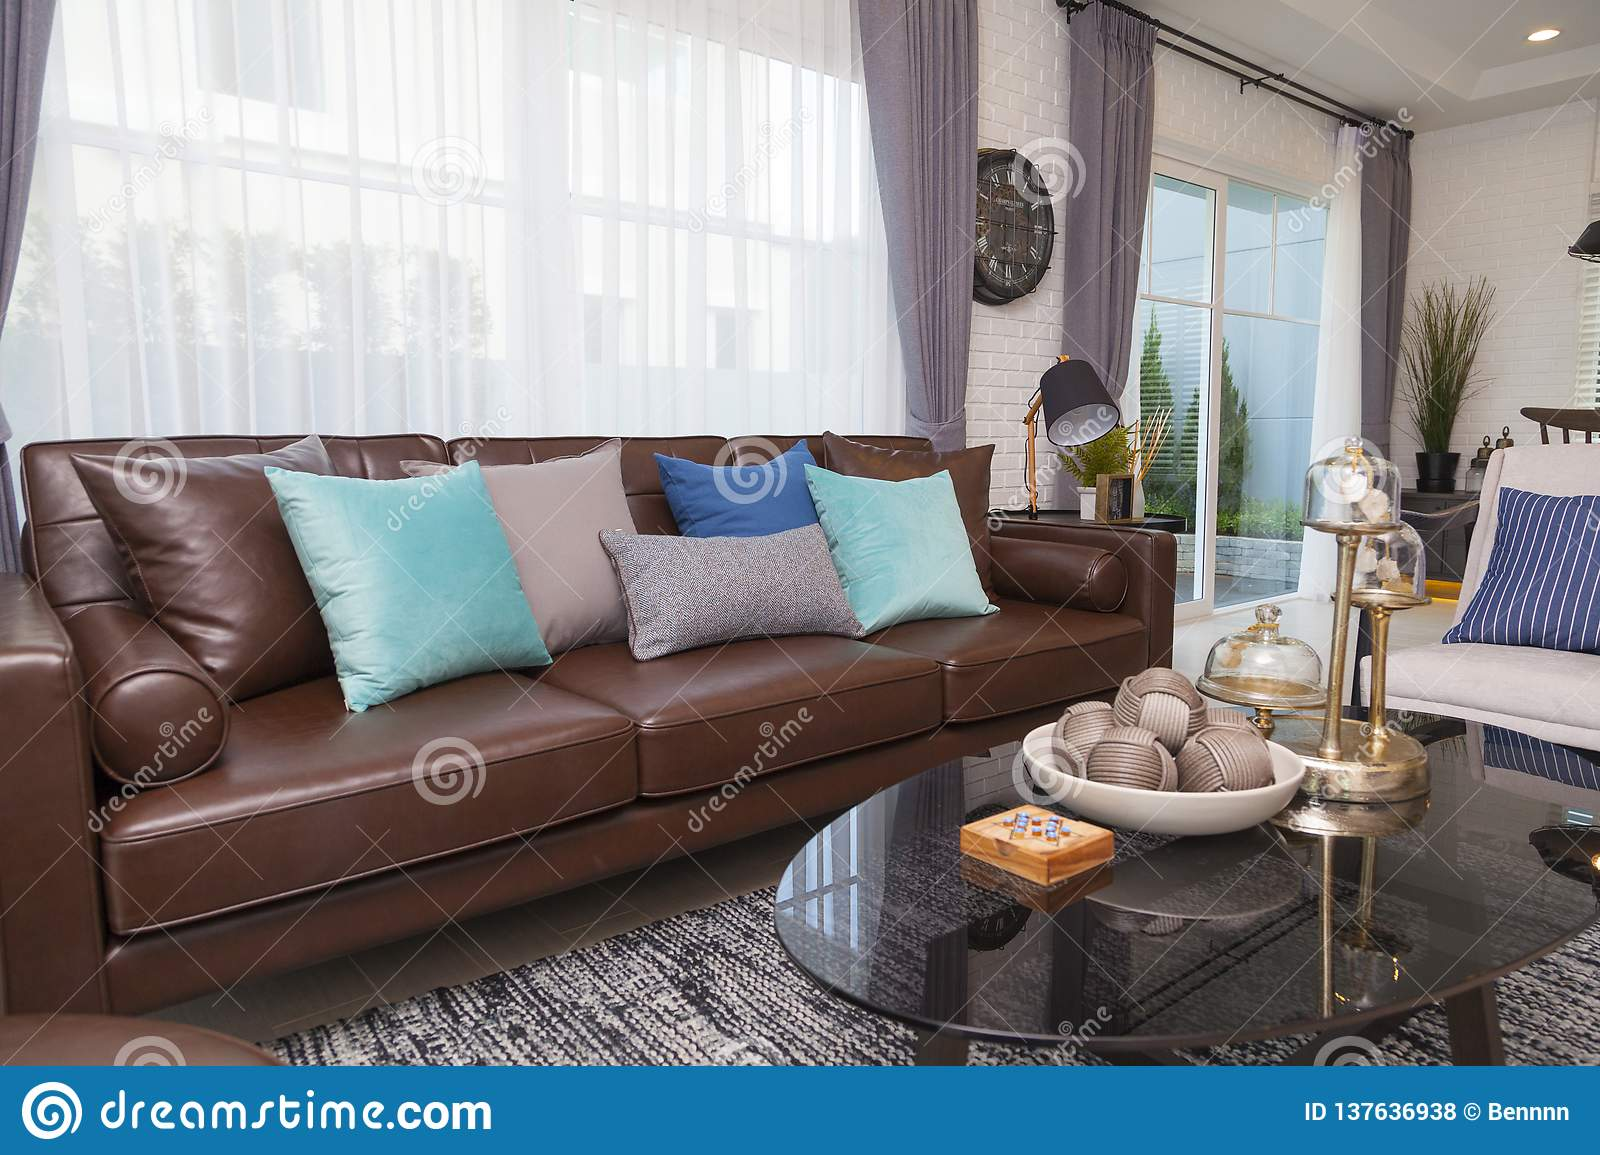 Blue And Gray Pillows On Leather Sofa In Modern Living Room Stock Photo Image Of Details Comfort 137636938